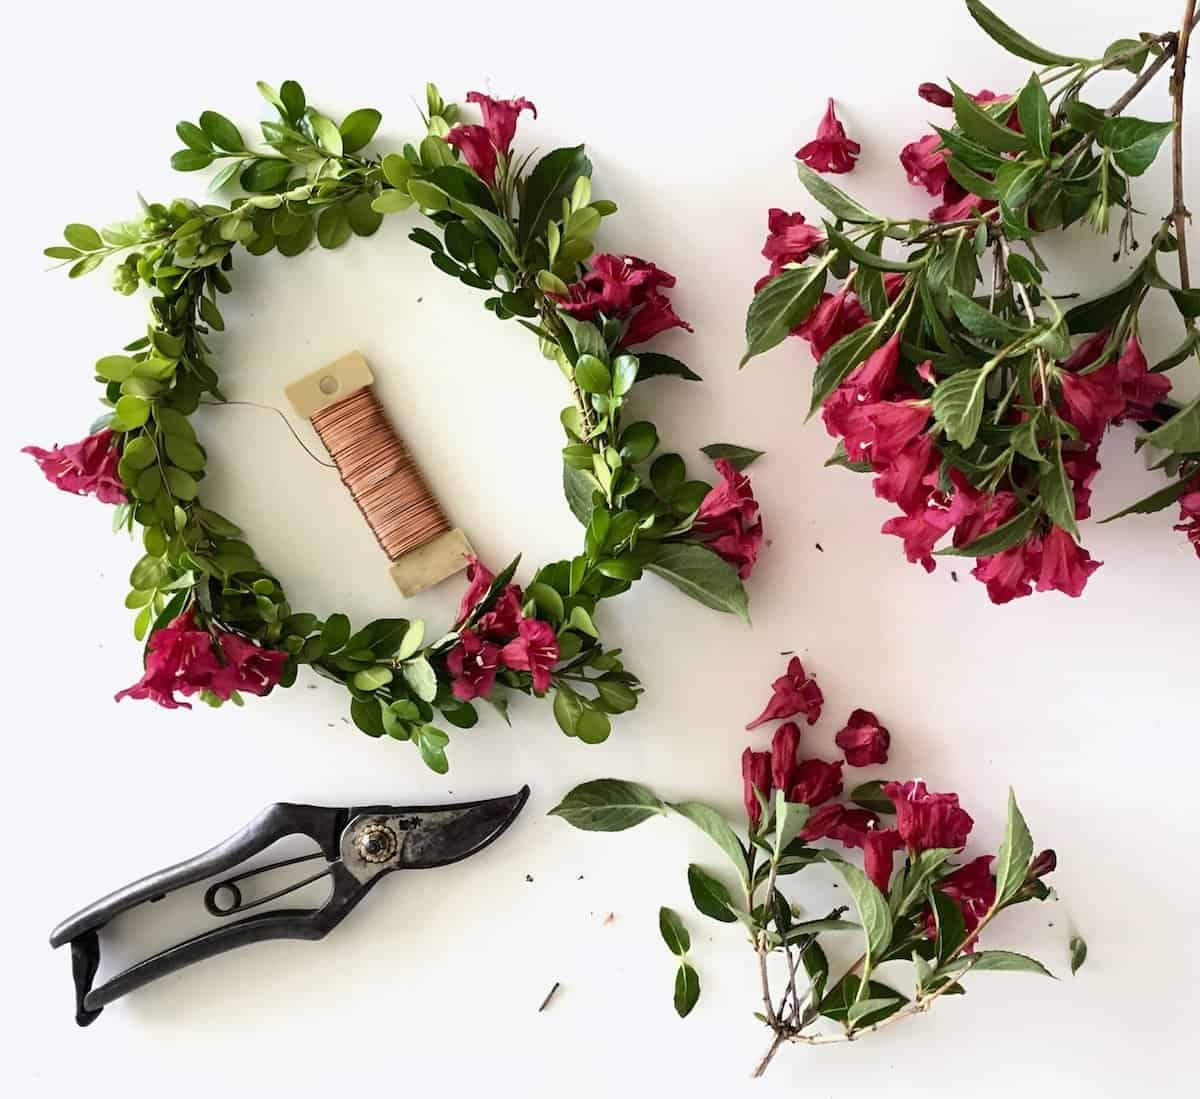 This DIY tutorial shows how to make a flower crown with real flowers and greenery | Home for the Harvest